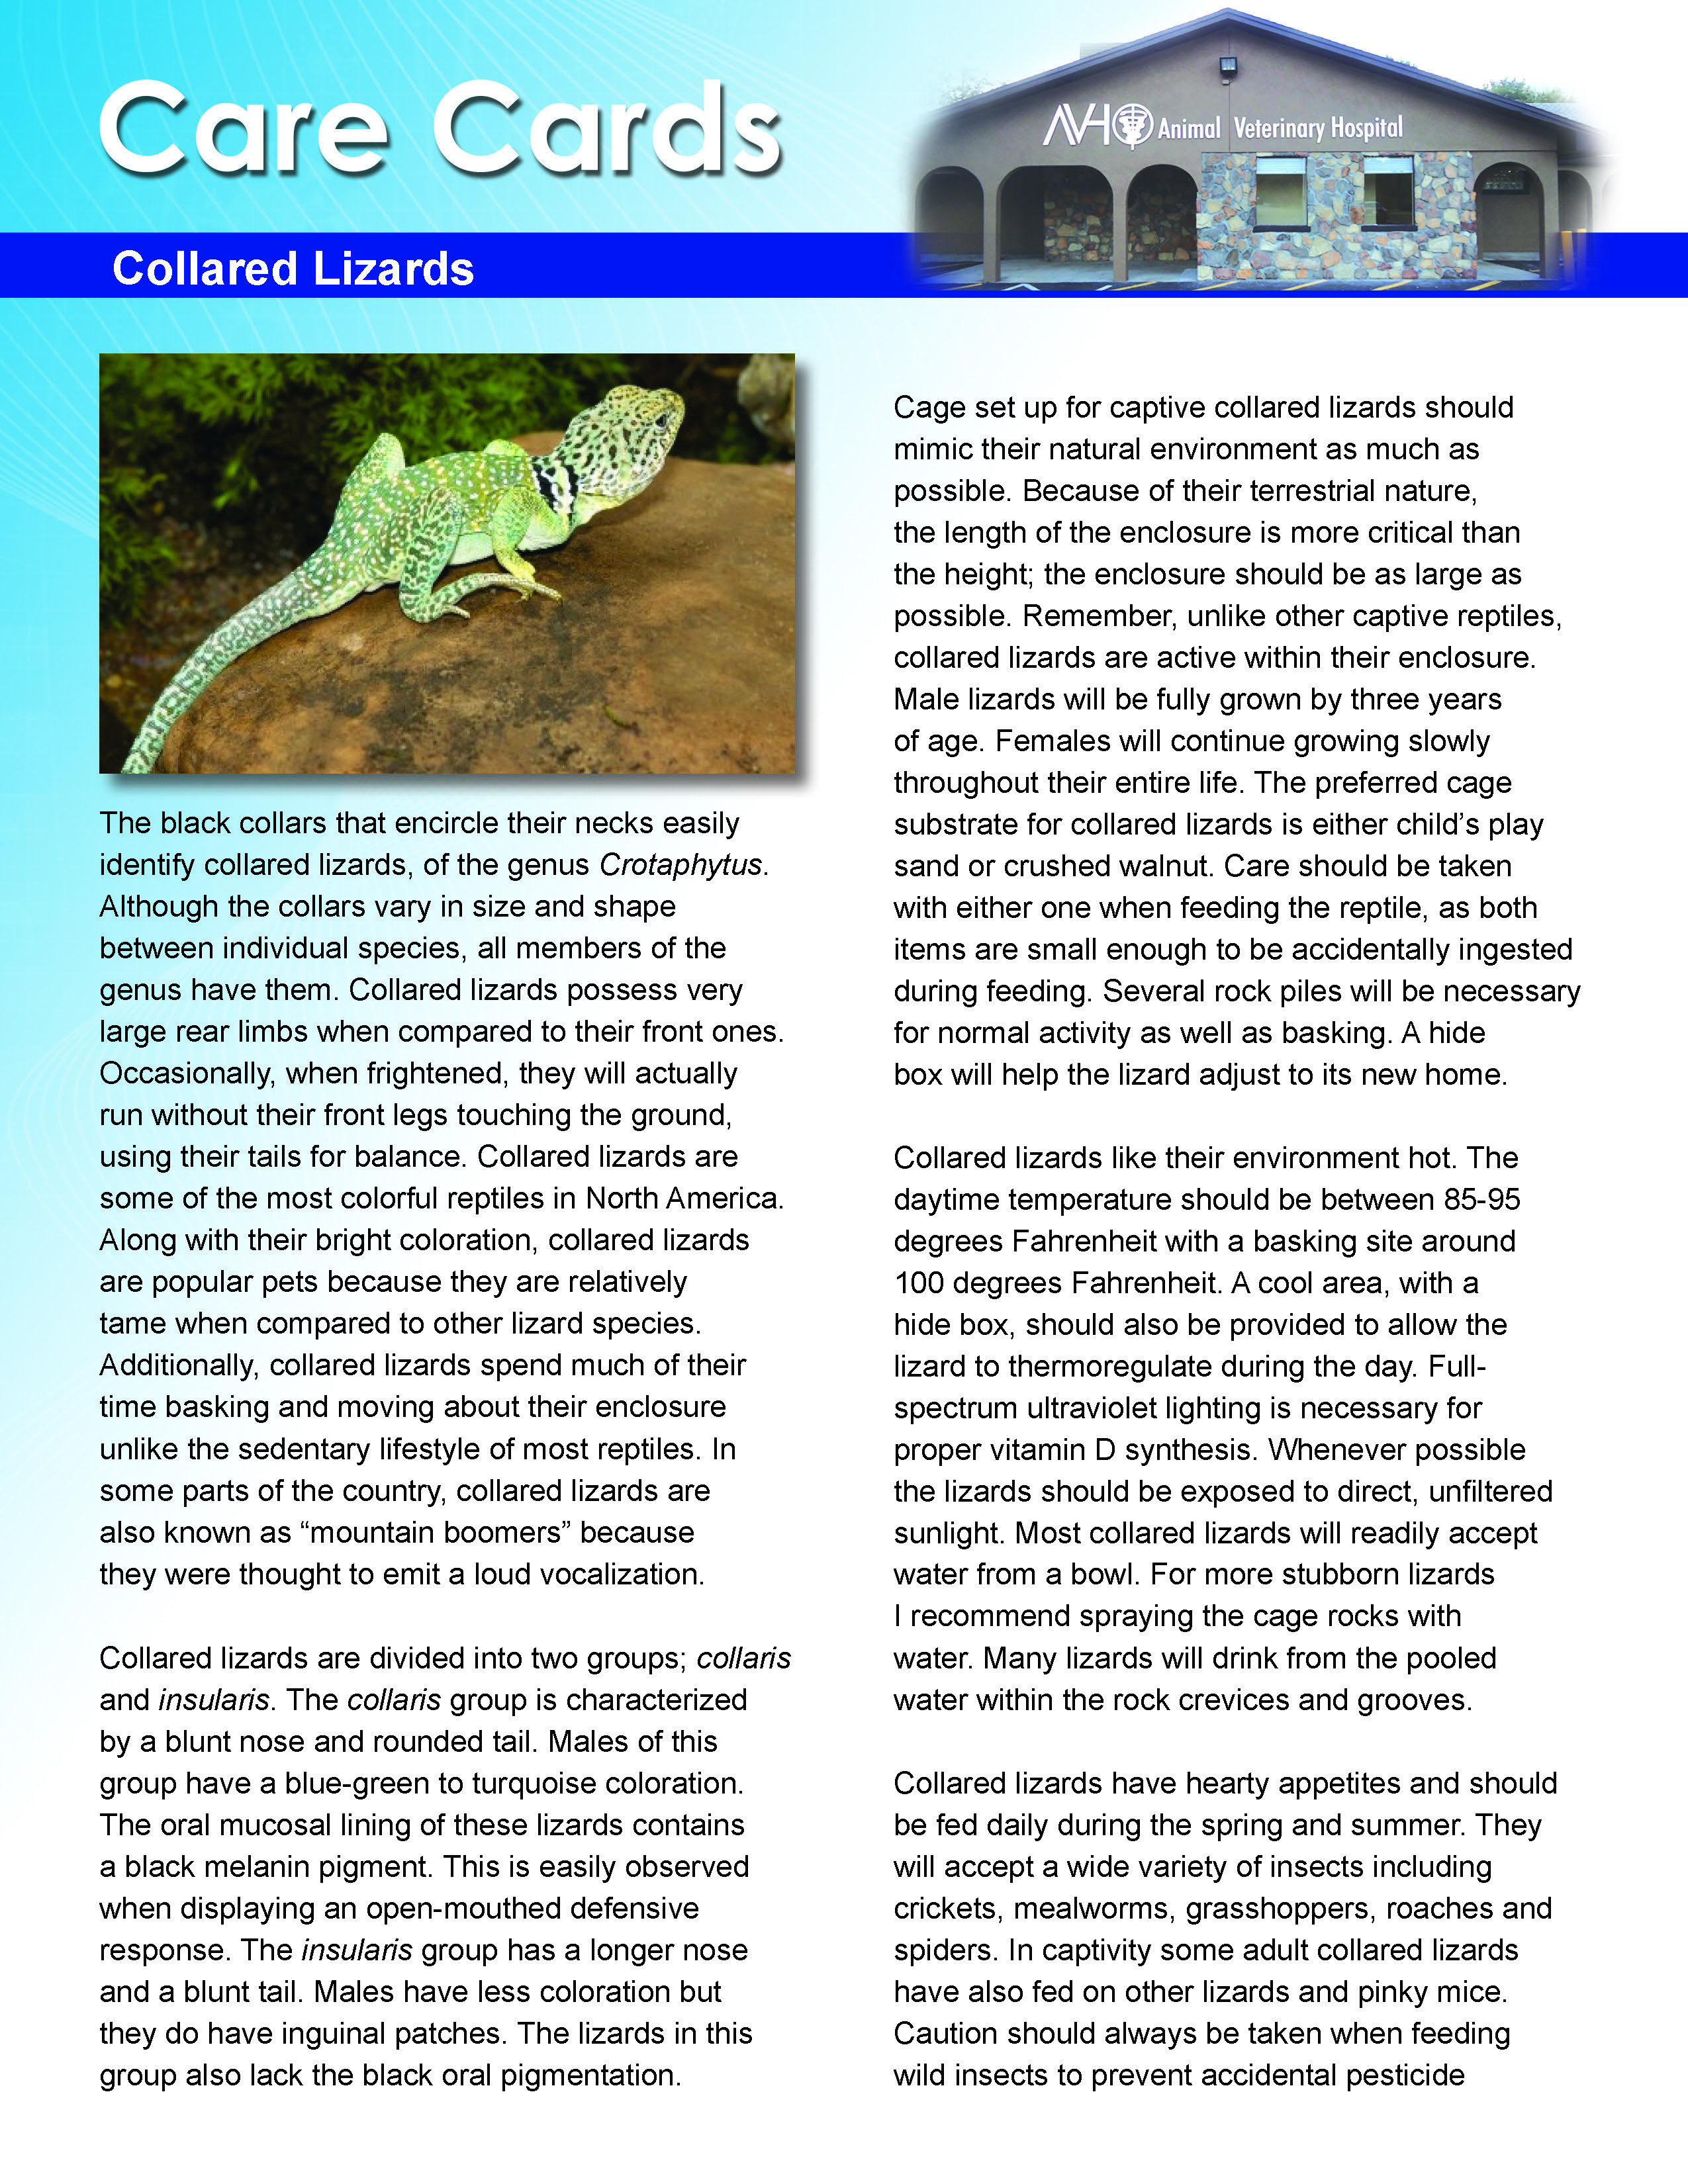 Collared Lizard Care Card